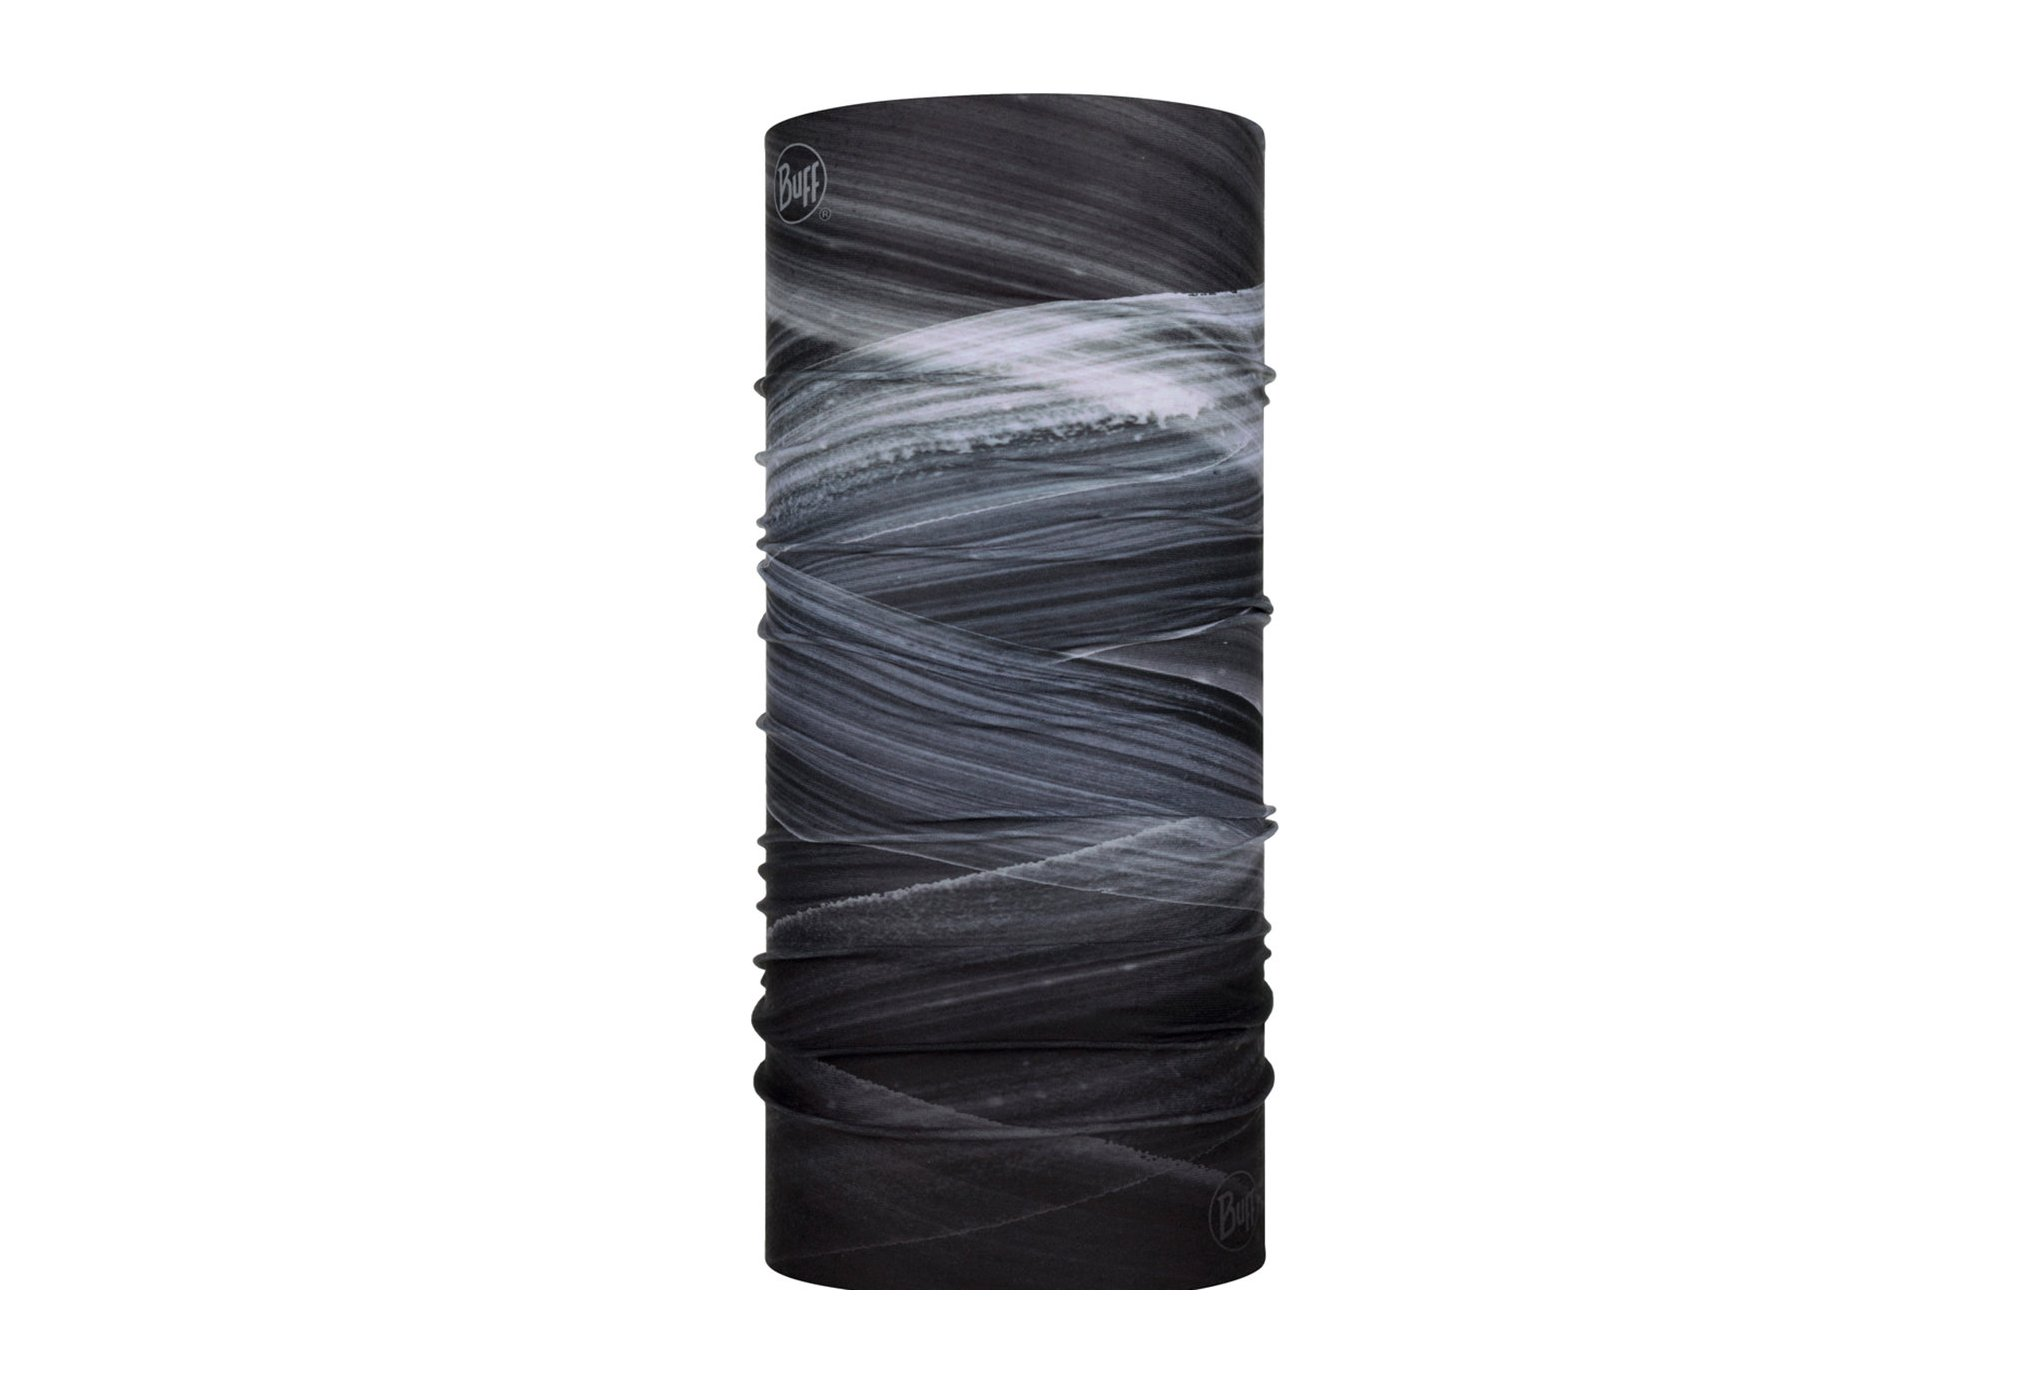 Buff Original Speed Graphite Tours de cou